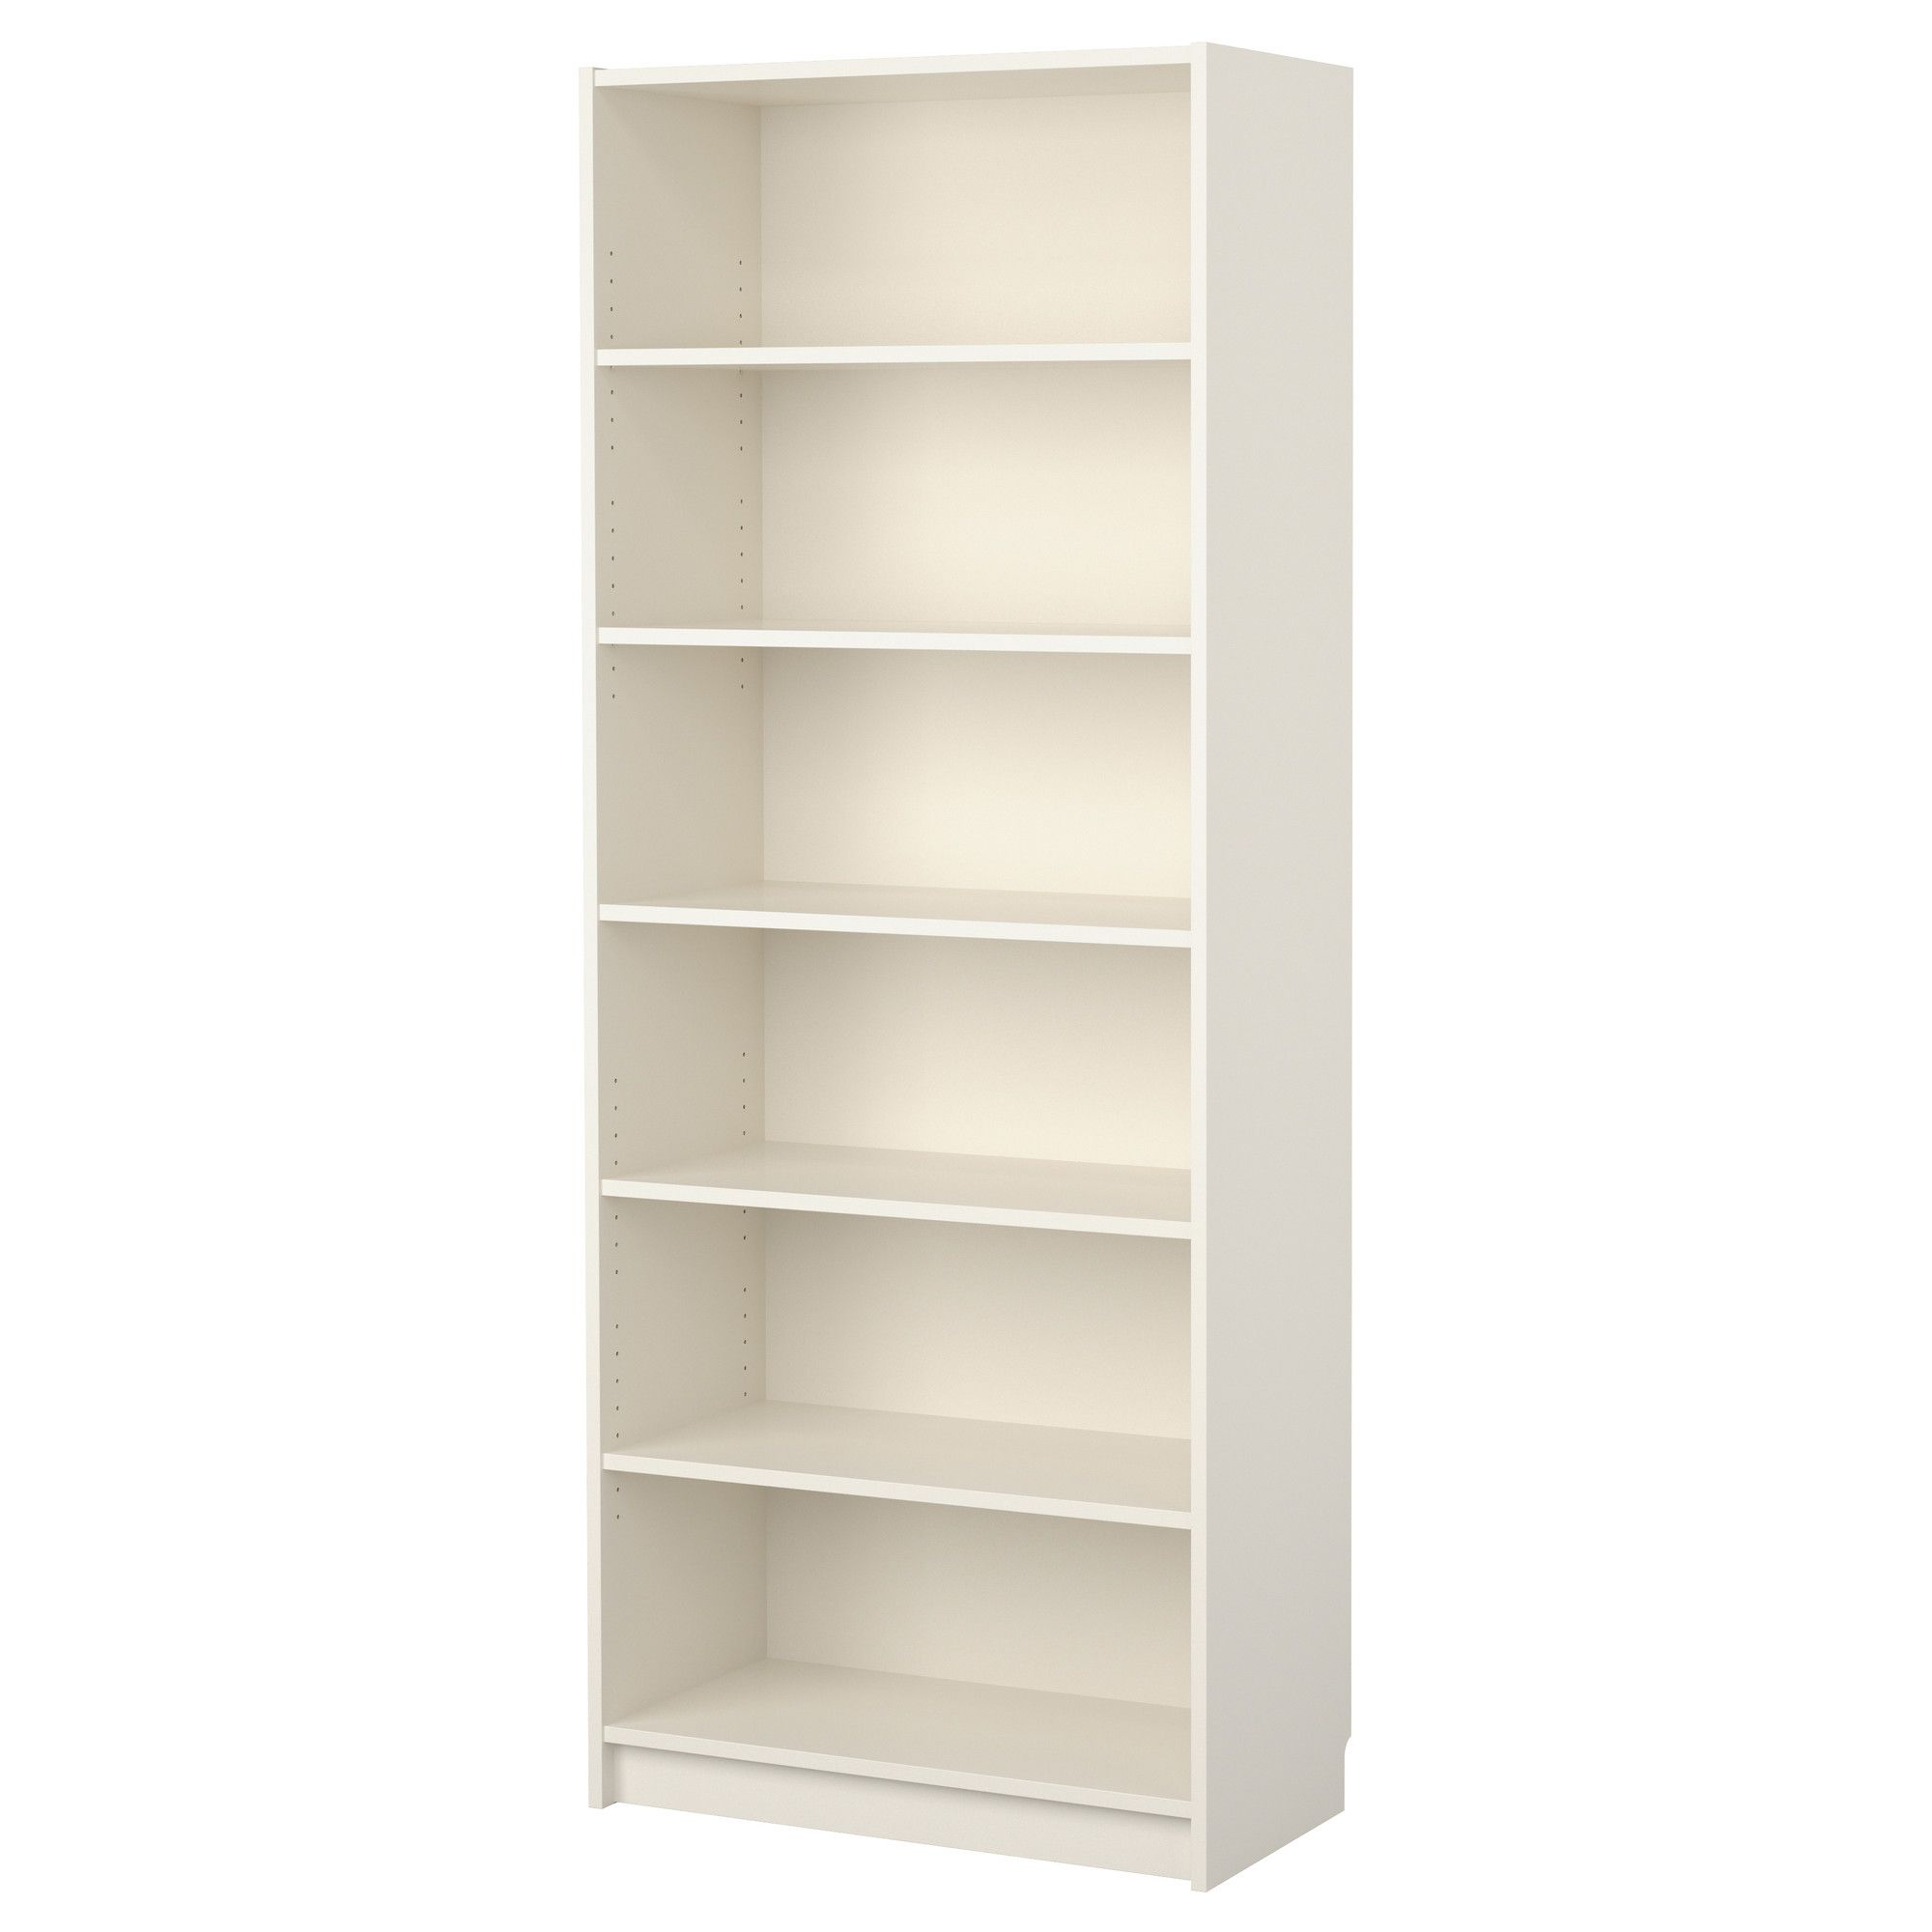 Billy Ikea Dimensions Ikea Billy Bookcase White Article Number 102 084 67 Dimensions